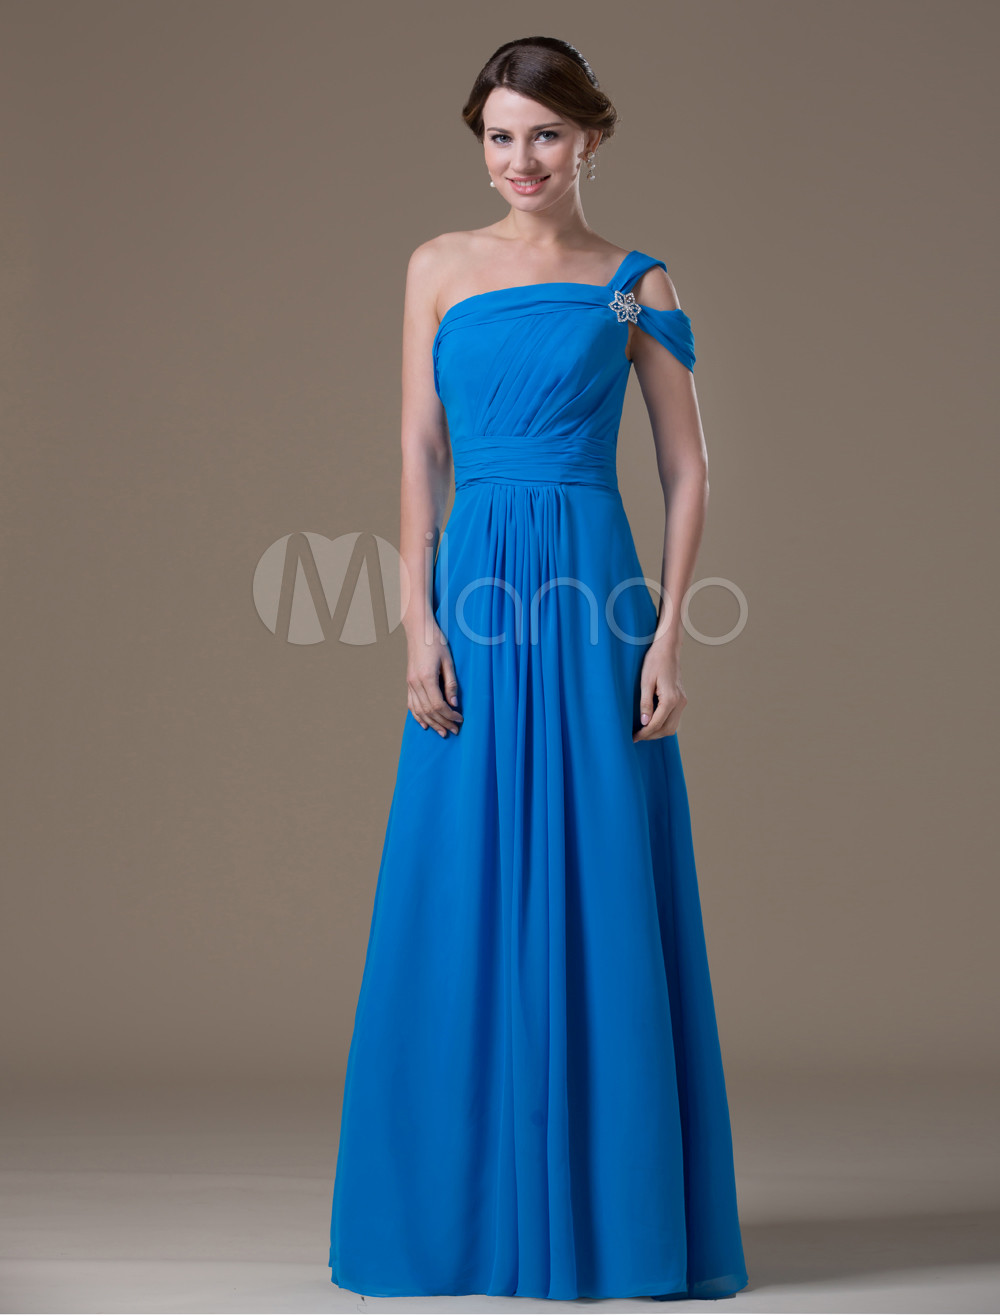 f4021b52bf677 ... Royal Blue Chiffon One Shoulder Maternity Bridesmaid Dress-No.8. 12.  30%OFF. Color: AddThis Sharing Buttons